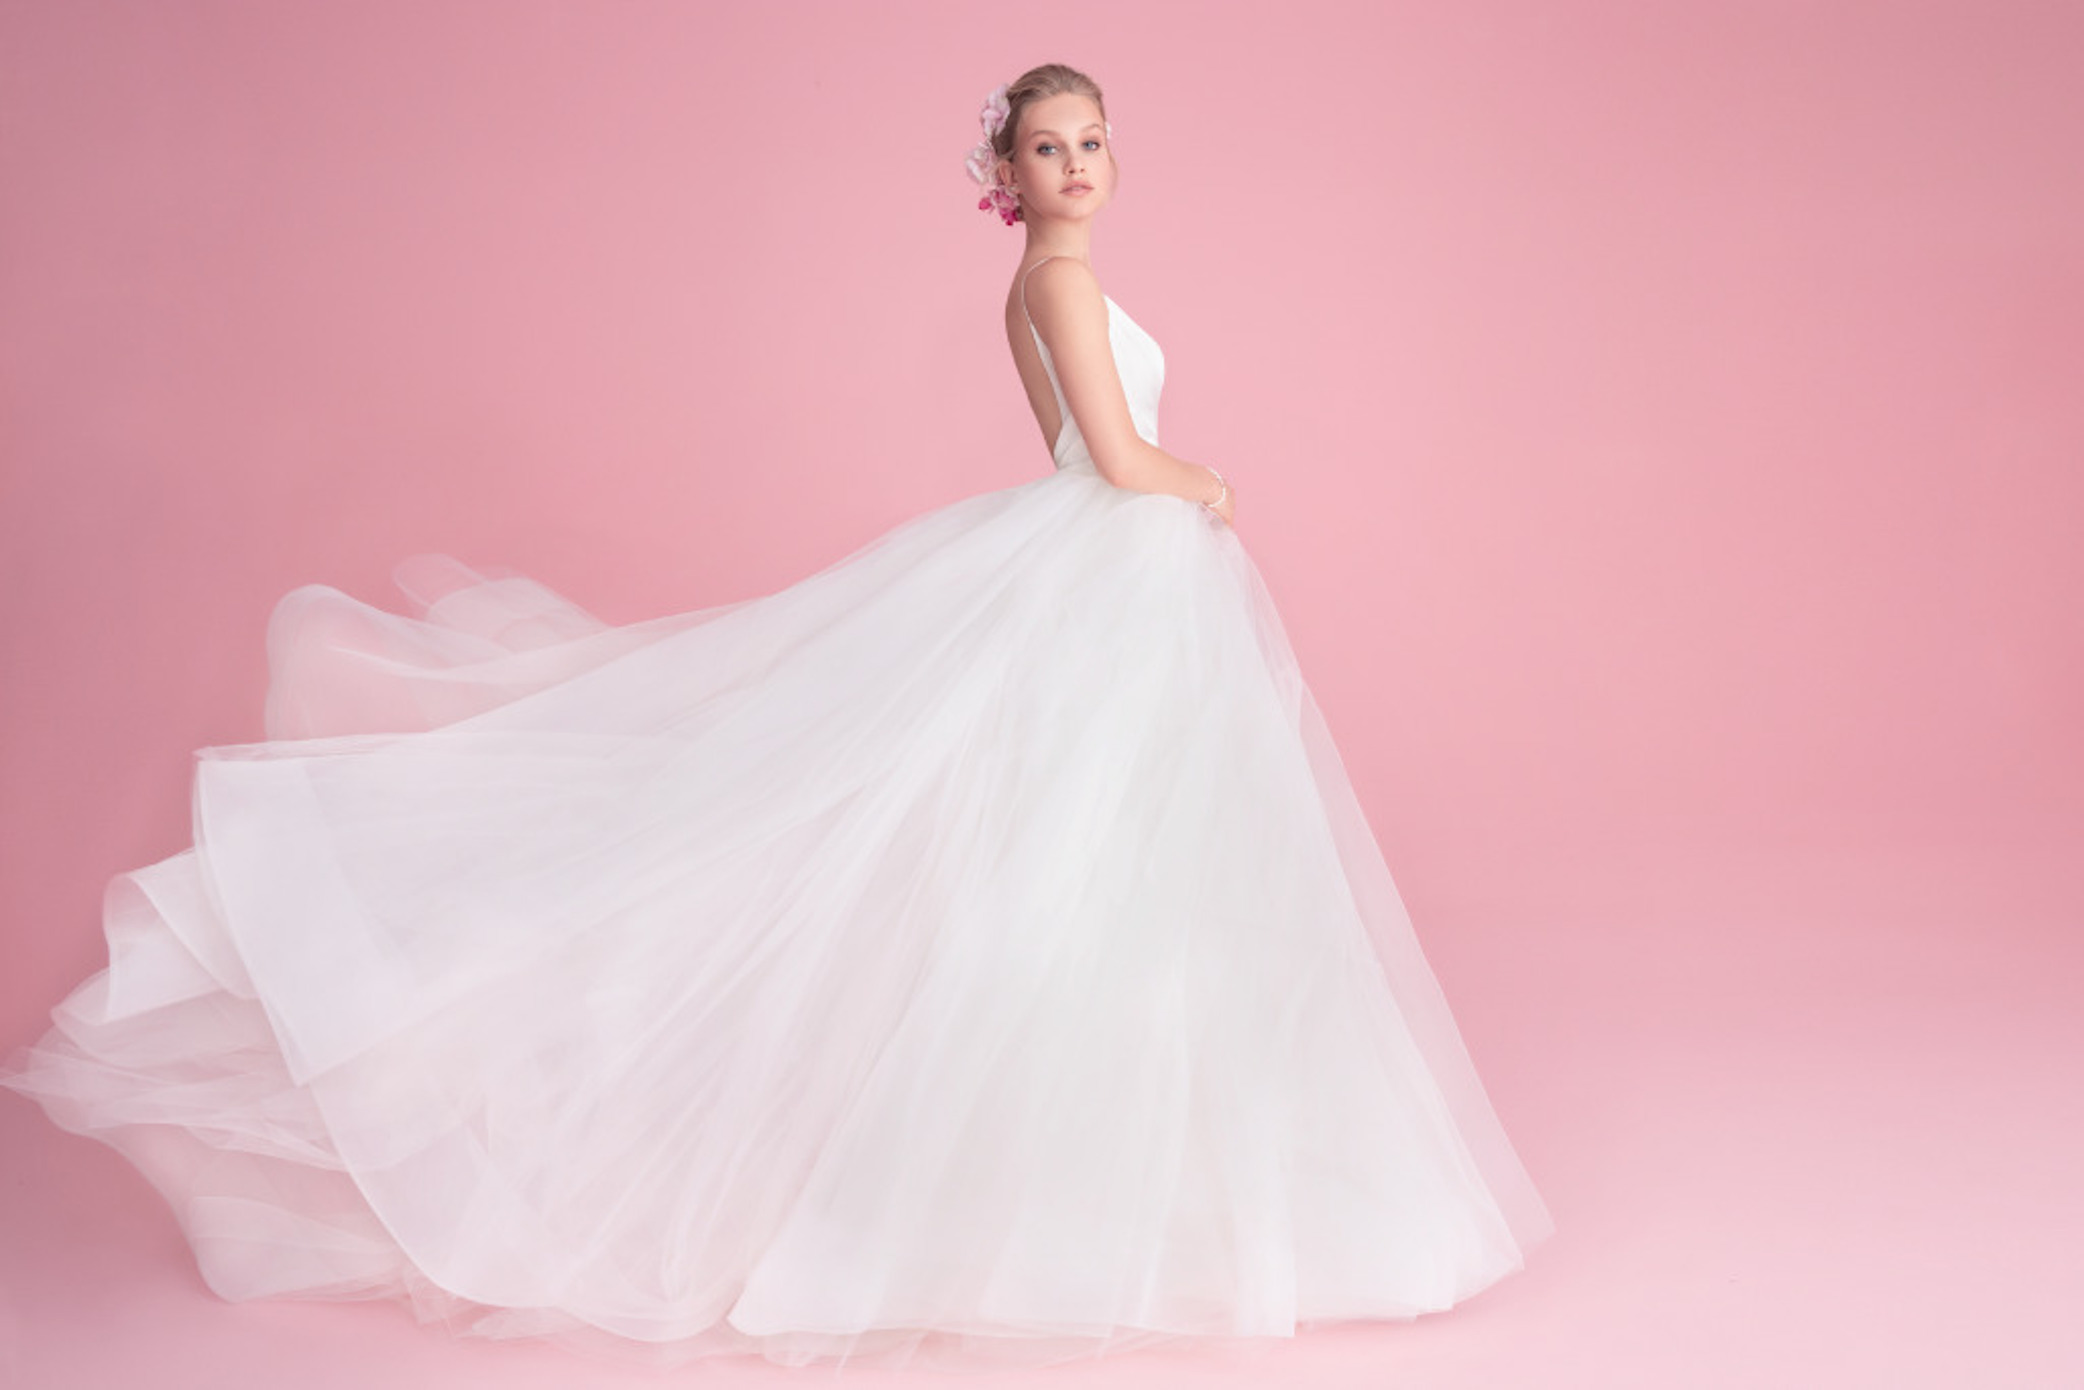 Wedding dresses bridesmaid dresses ma carr bridal buffalo wedding dresses bridesmaid dresses ma carr bridal buffalo rochester and wny716 667 2502 ombrellifo Image collections